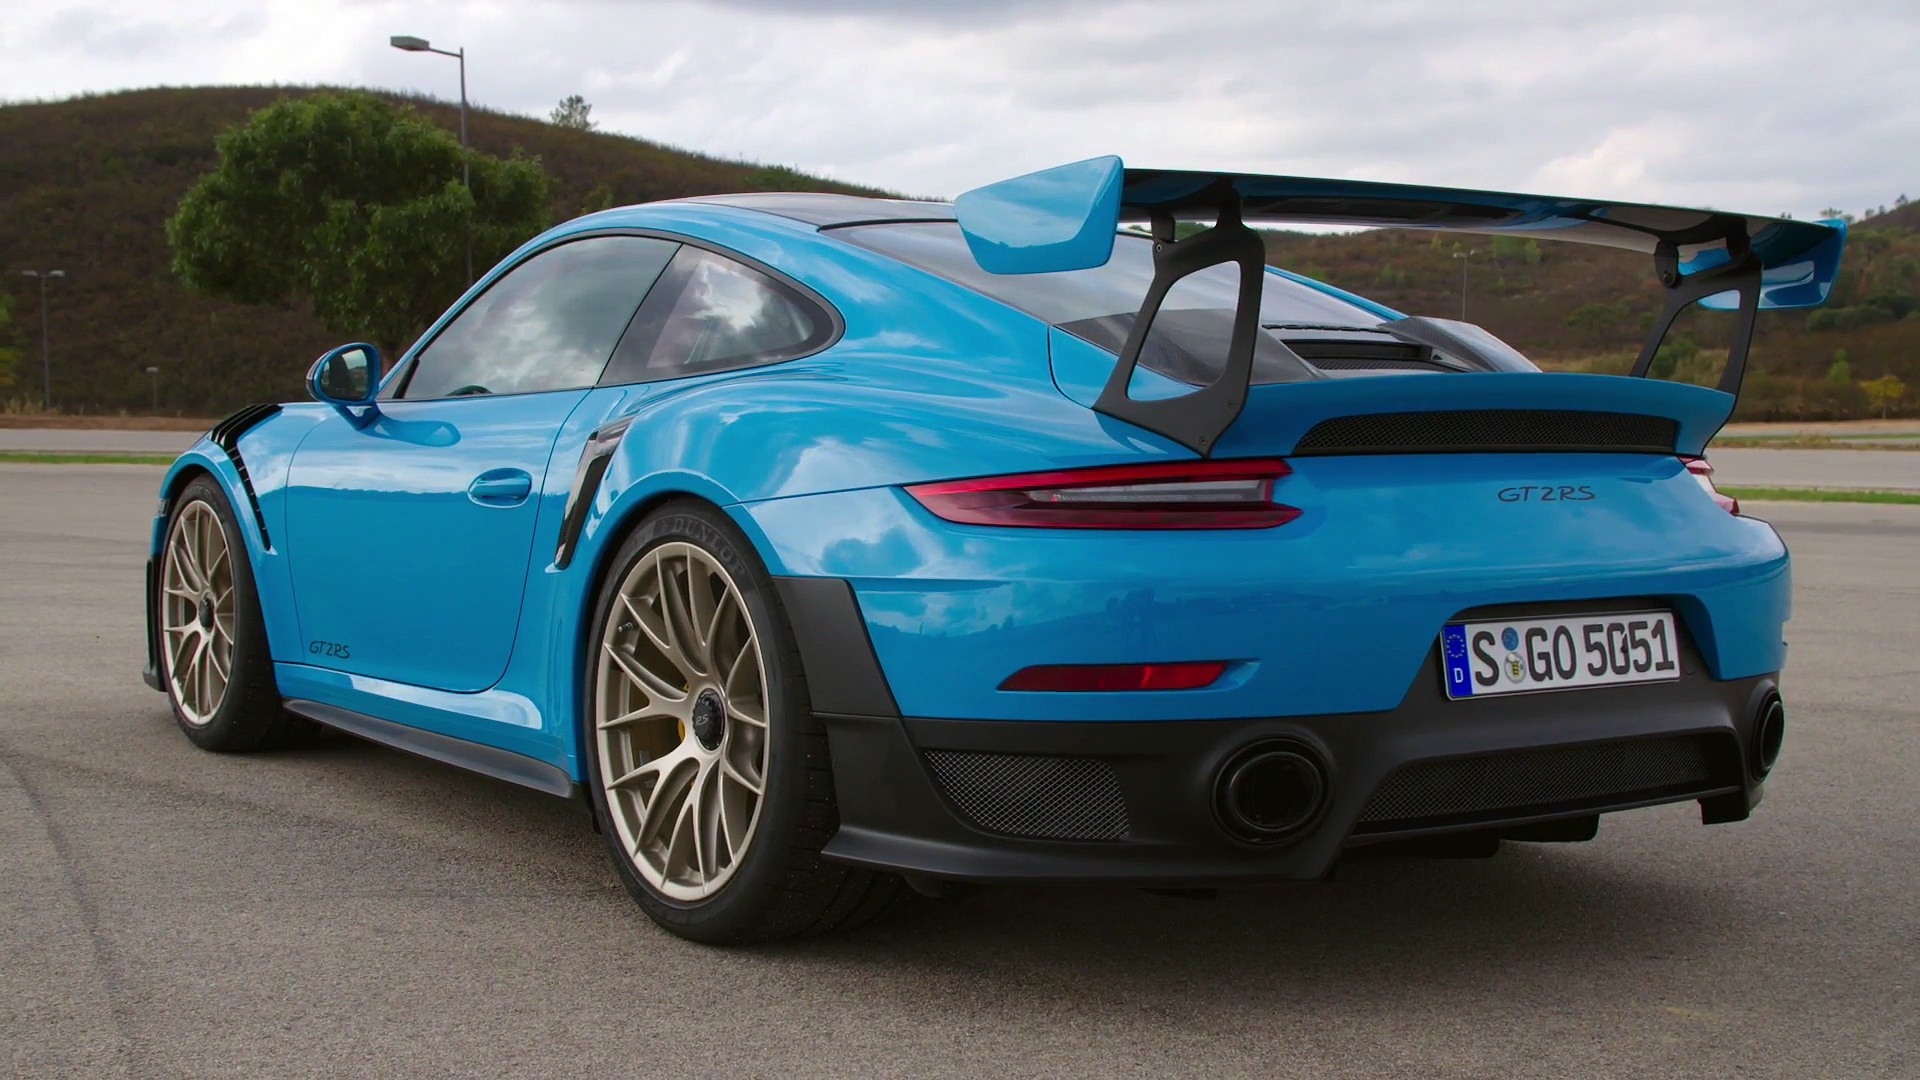 New Porsche 911 Gt2 Rs Hit Used Market For Nearly R10